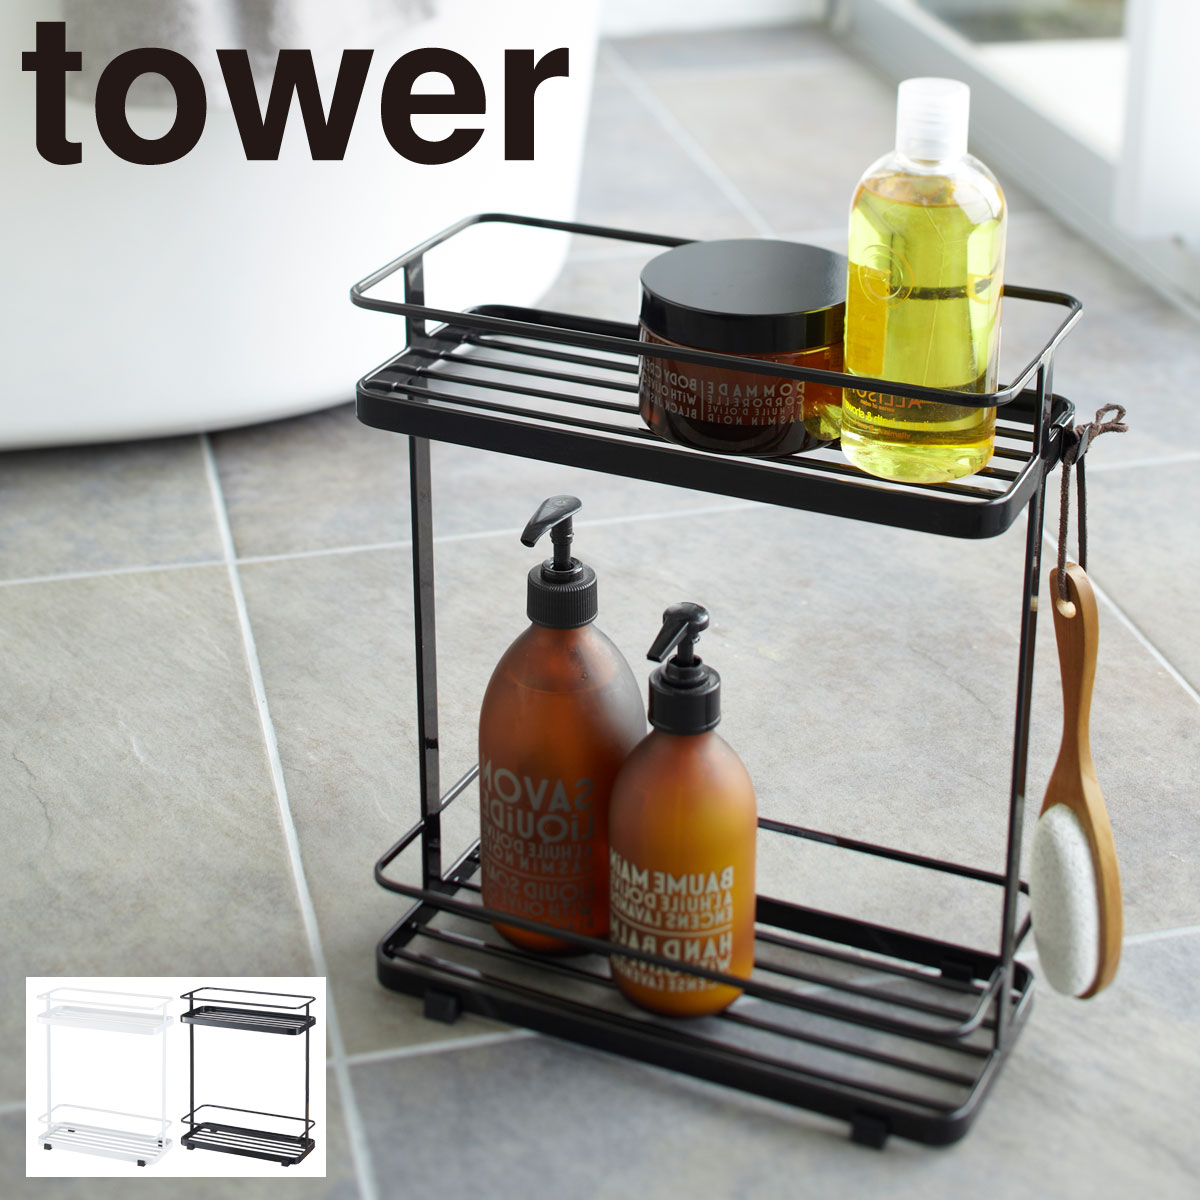 lighterya | Rakuten Global Market: General store shower rack ...